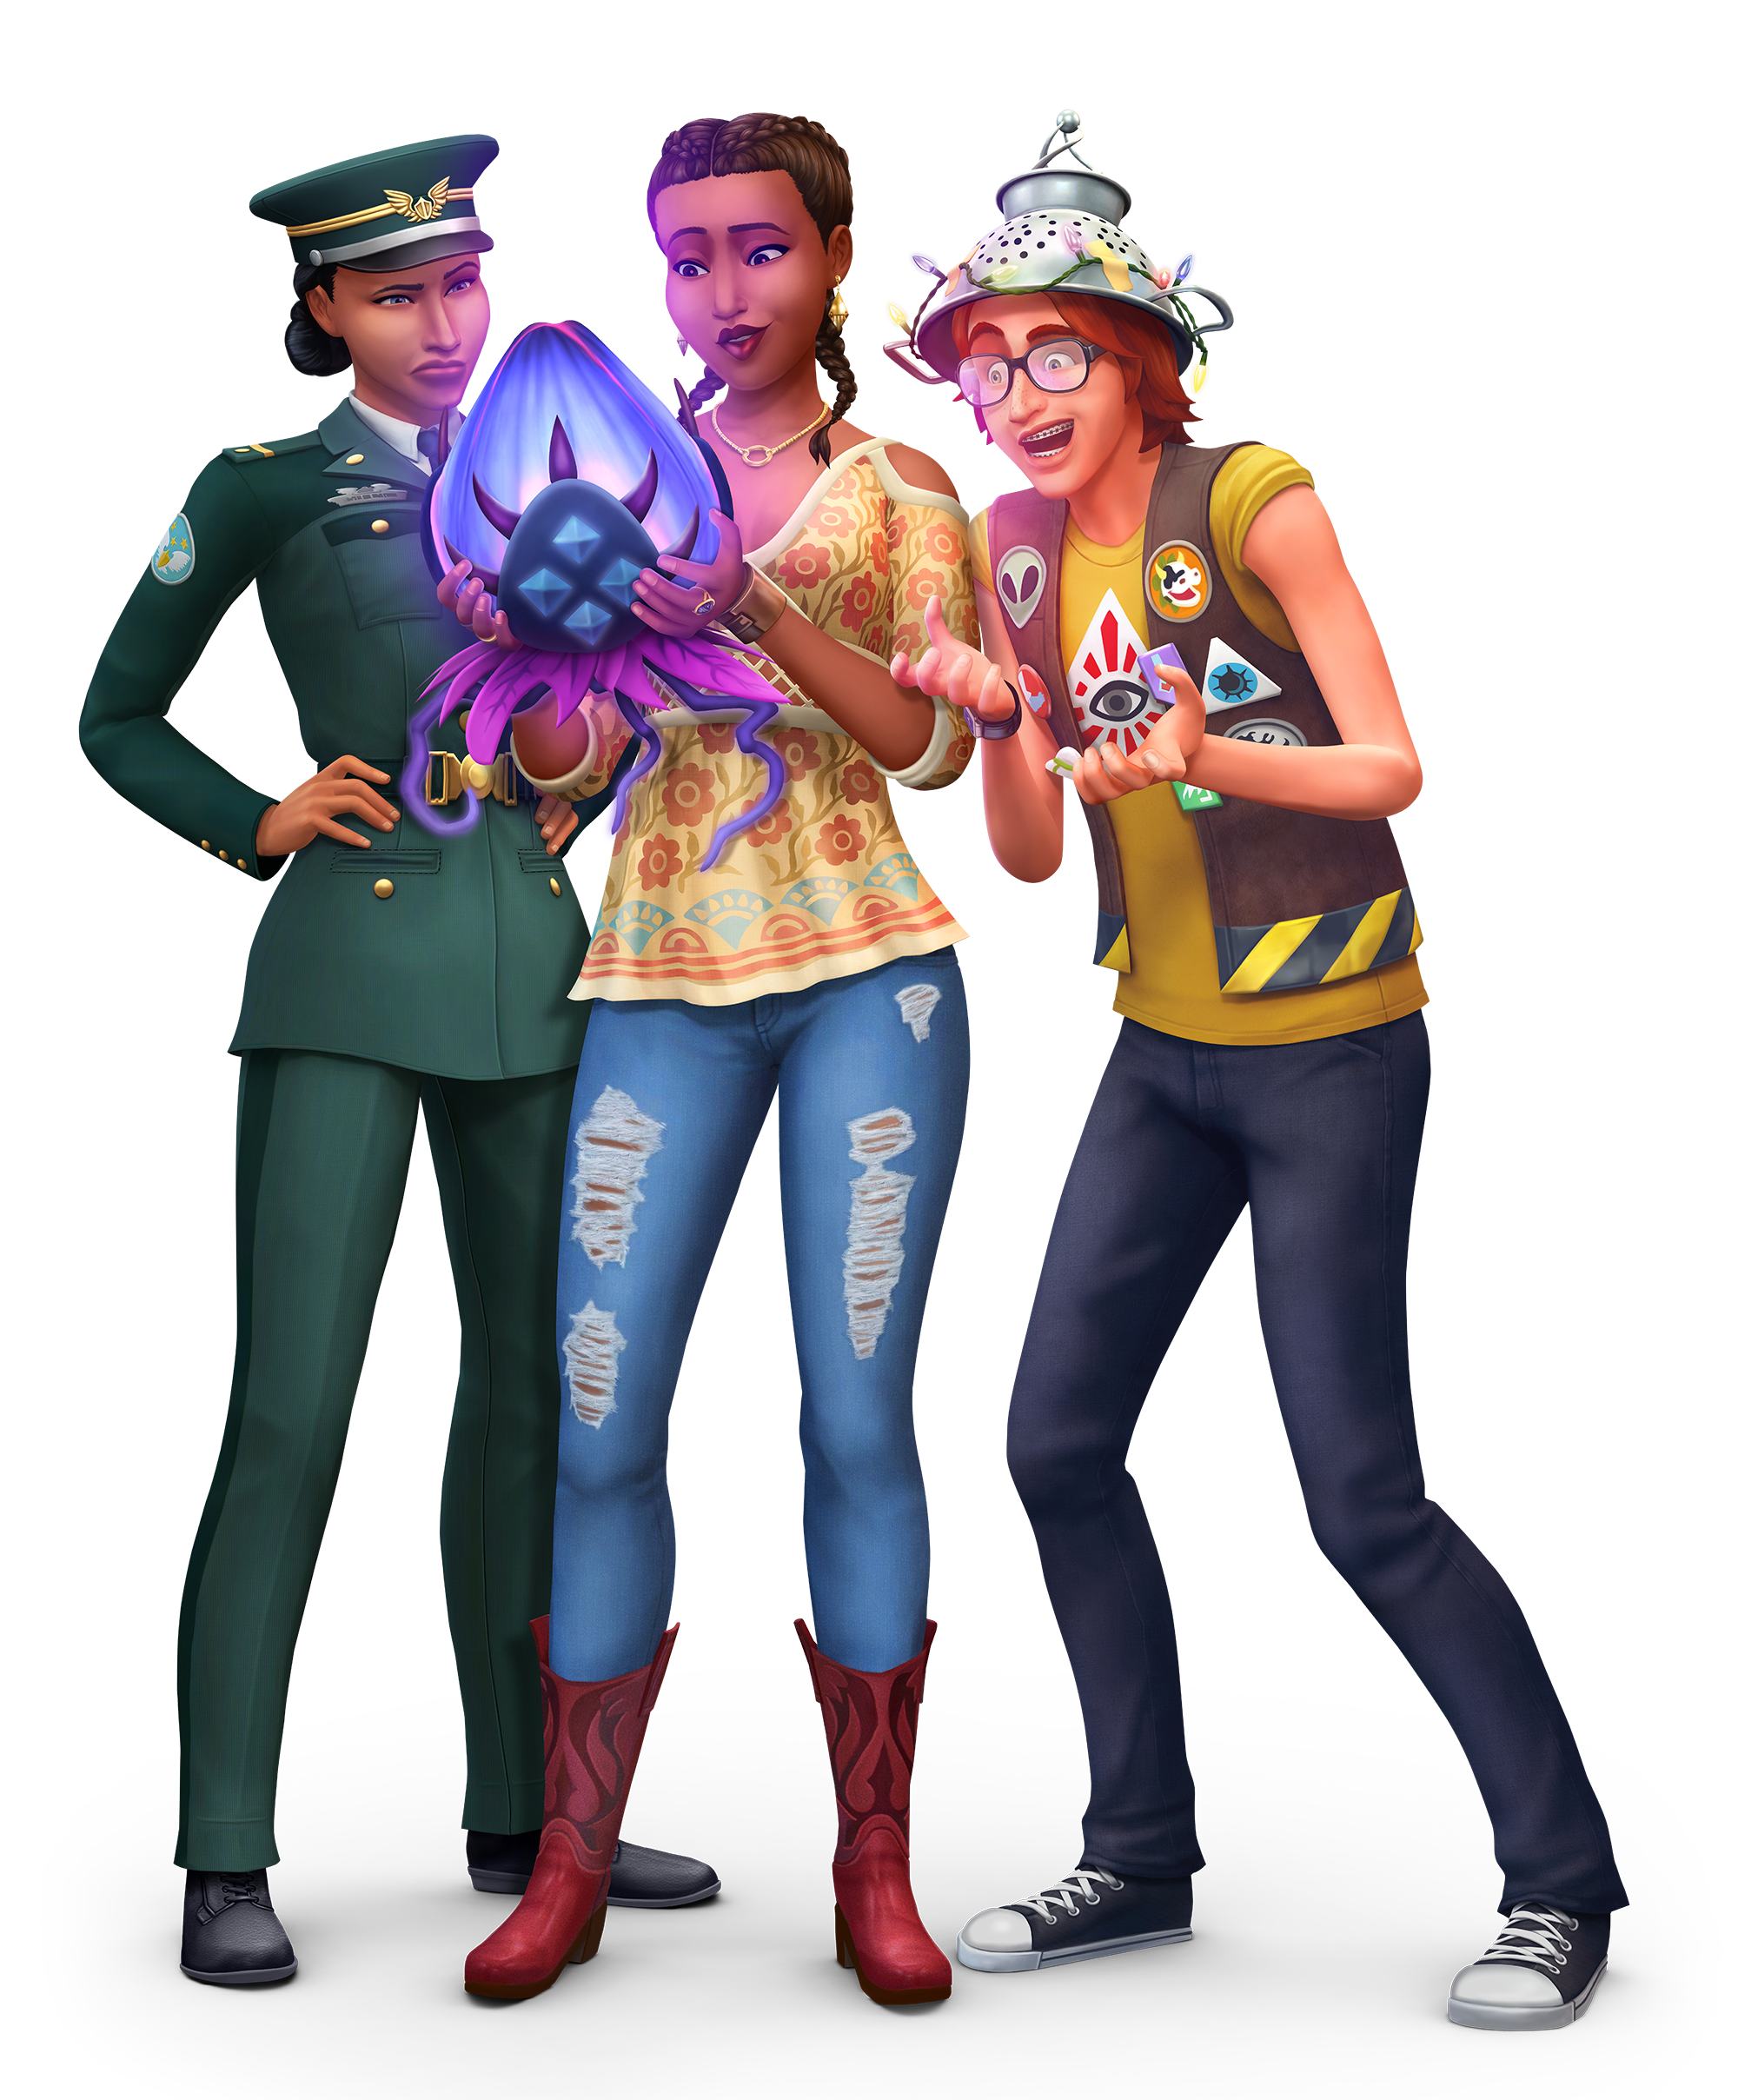 Google Image Result For Https Toppng Com Uploads Preview Acplumbobs Avatar The Sims 4 11562905525lvaebtt0ic Png Image Sims 4 Google Images